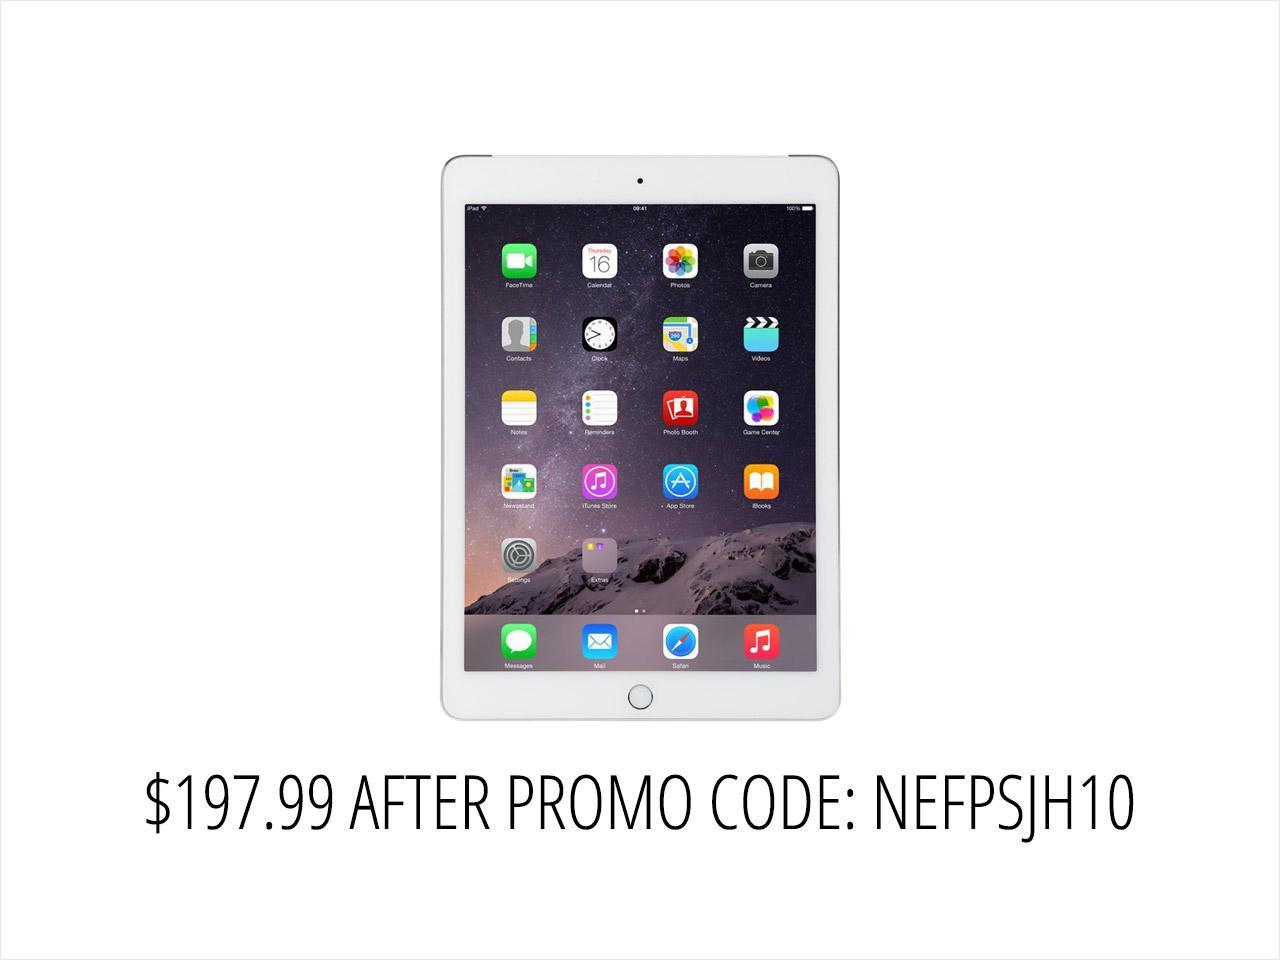 "Refurbished: Apple iPad Air 2 MH2N2LL/A Apple A8X 1.50 GHz 64 GB Flash Storage 9.7"" 2048 x 1536 Grade B Tablet (Wi-Fi + Cellular) iOS Silver"